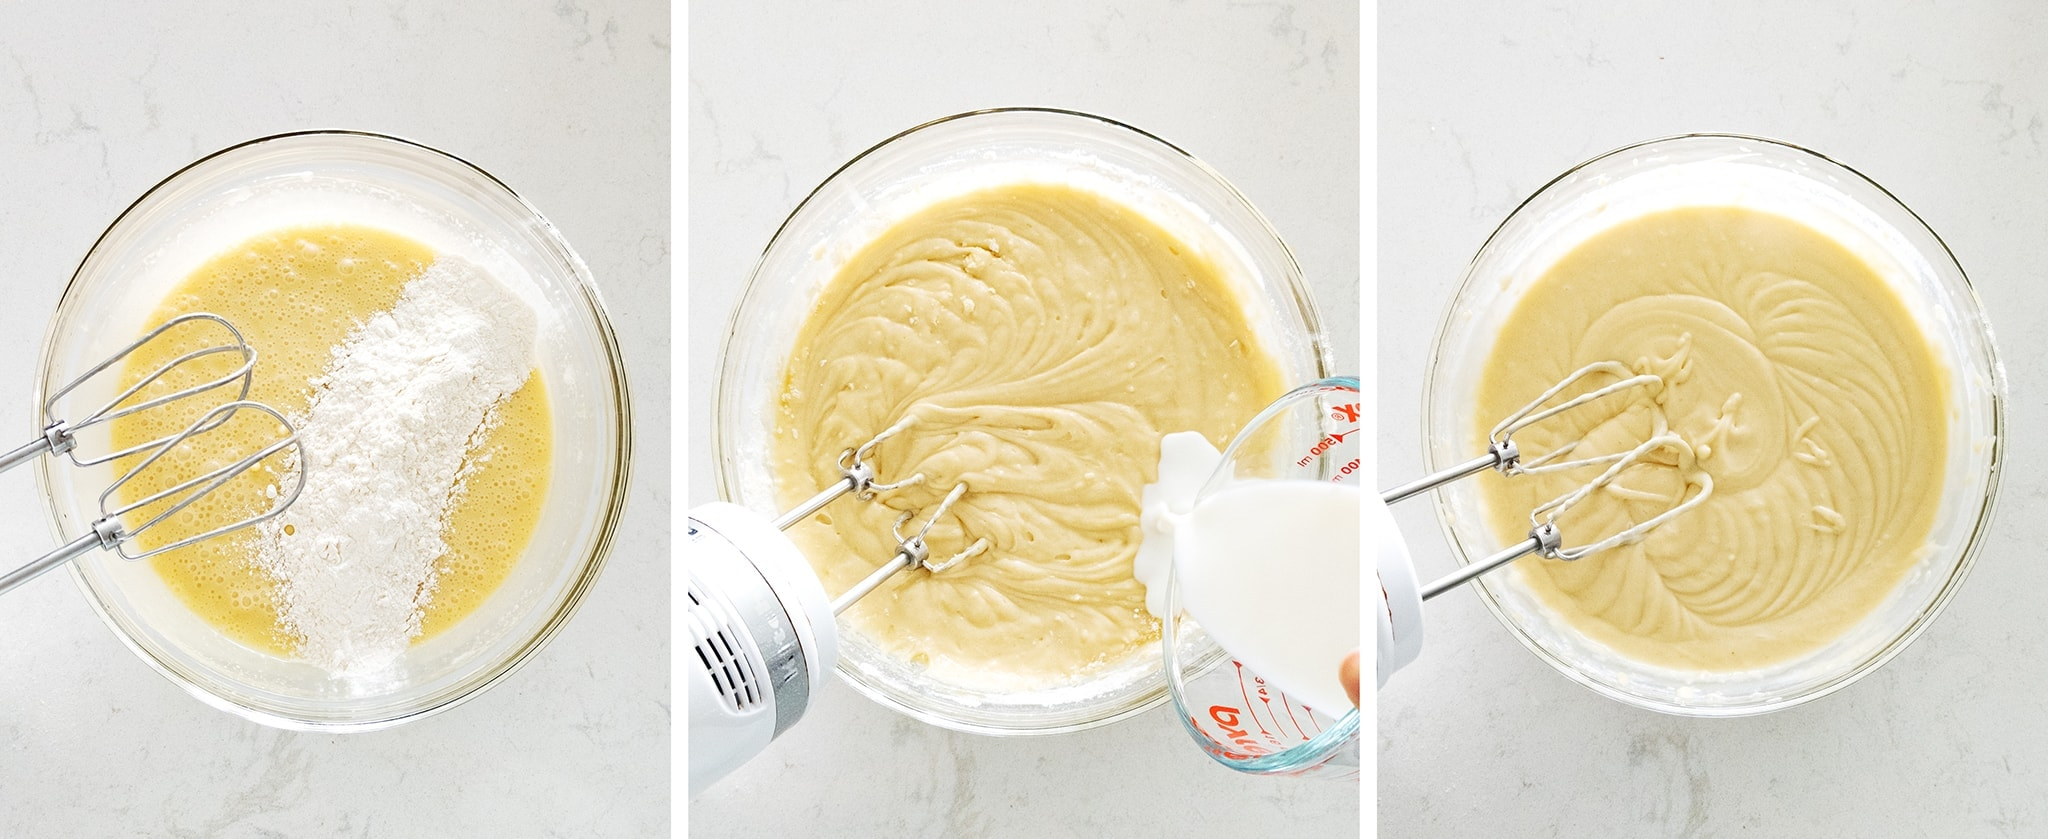 Mixing flour and milk into cake batter